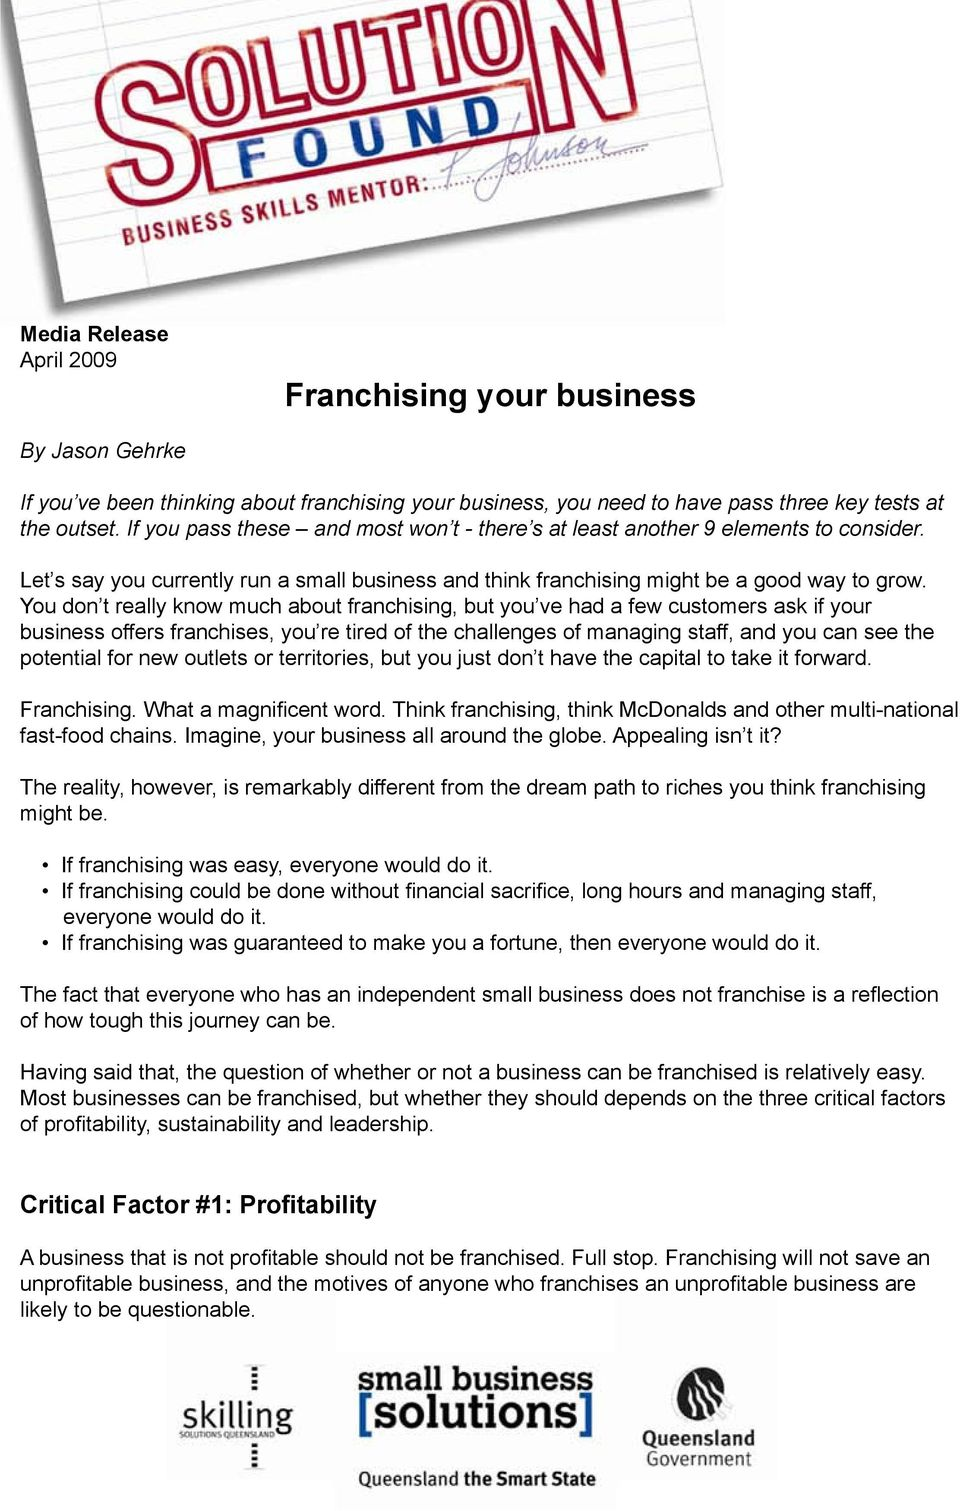 You don t really know much about franchising, but you ve had a few customers ask if your business offers franchises, you re tired of the challenges of managing staff, and you can see the potential